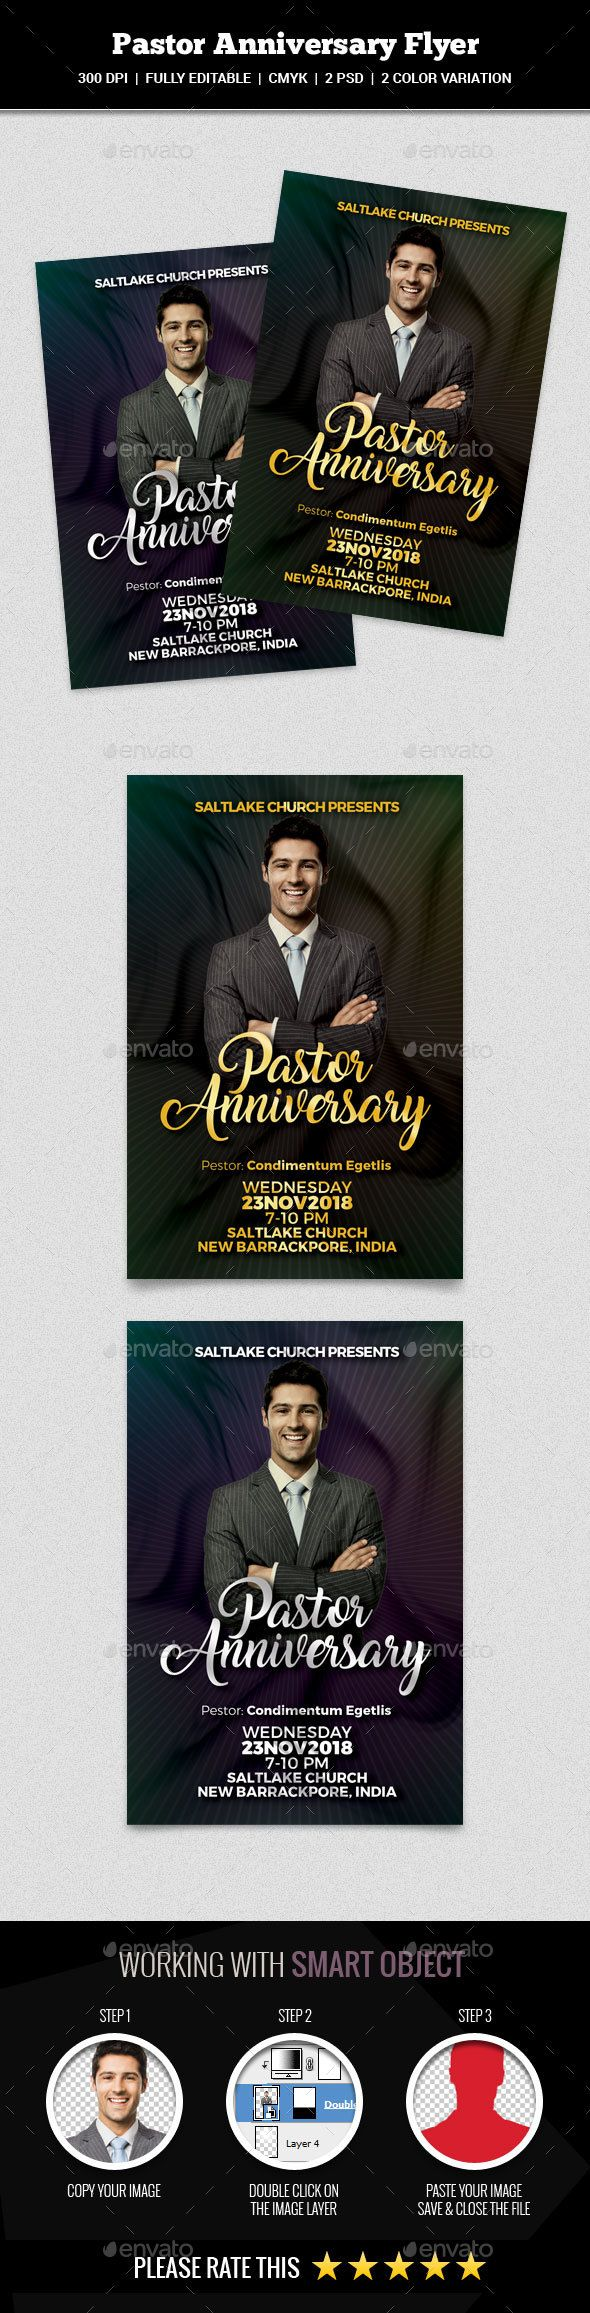 Pastor Anniversary #Flyer - Church Flyers Download here: https://graphicriver.net/item/pastor-anniversary-flyer/19537018?ref=alena994